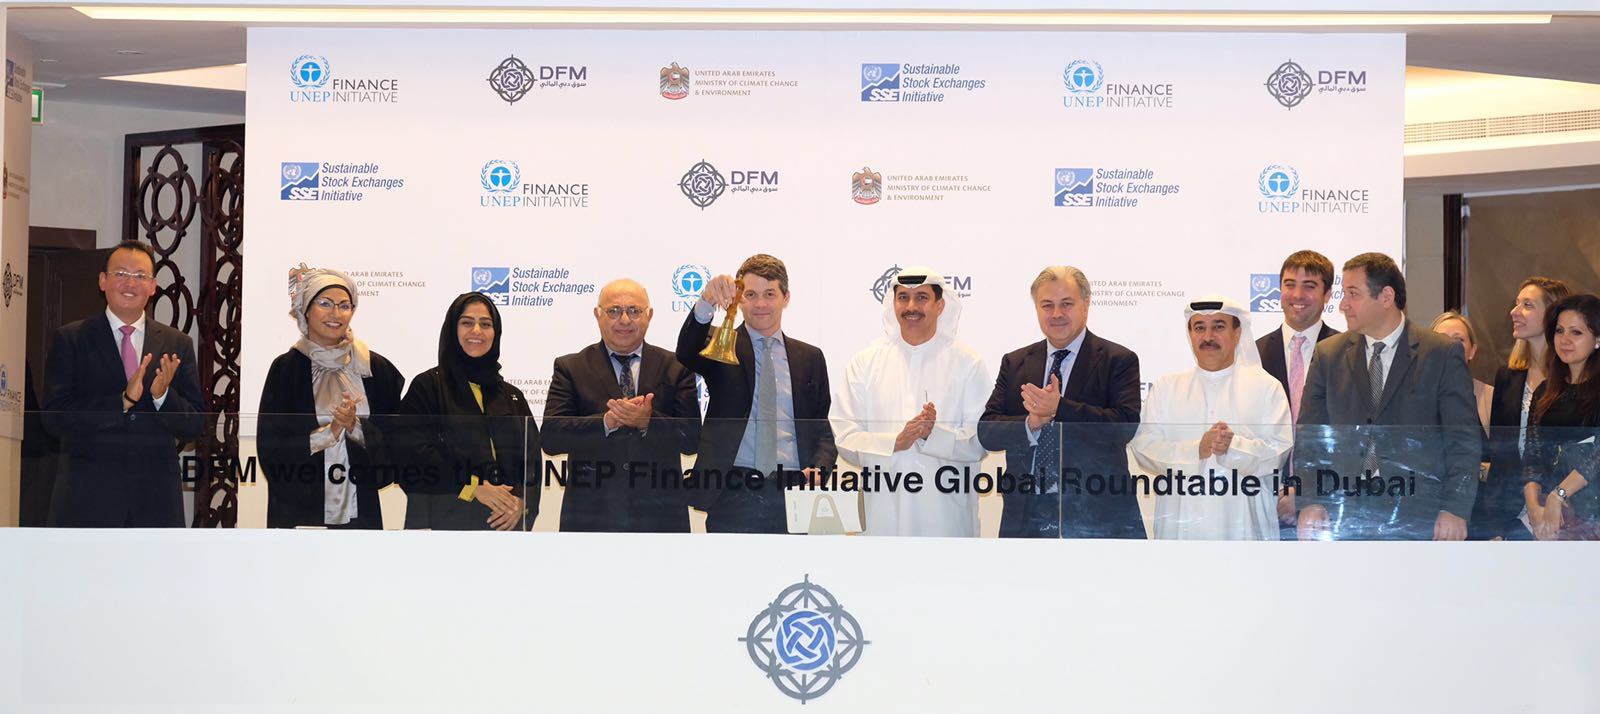 Dubai Financial Market hosts special bell-ringing ceremony to celebrate UNEP FI's Global Roundtable